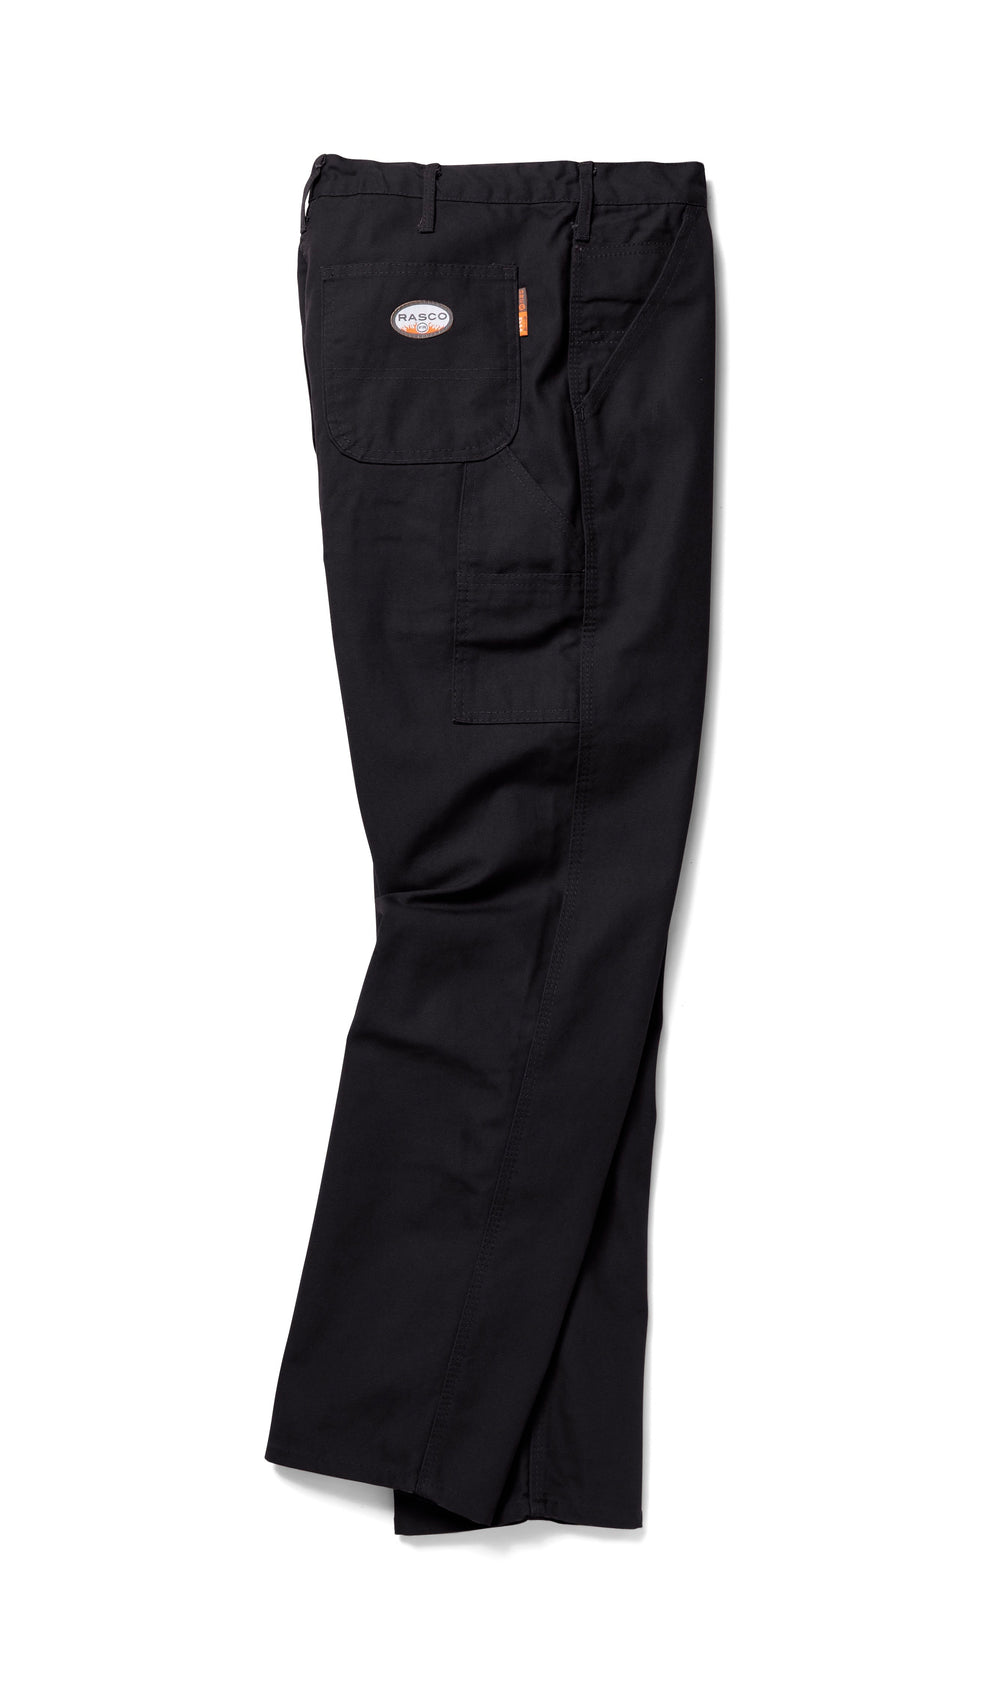 Rasco FR FR4507BK Black Duck Carpenter Pants